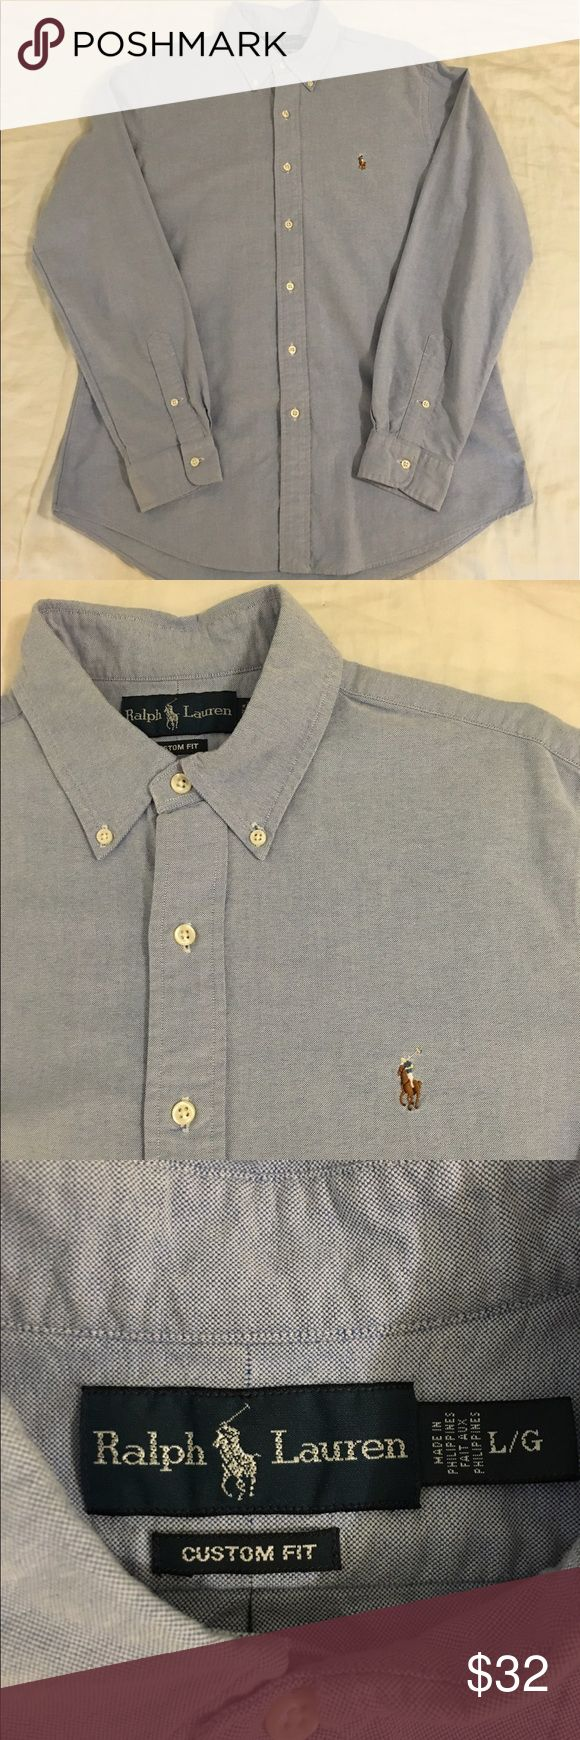 Polo by Ralph Lauren Oxford Shirt Men's Large For sale is a Polo by Ralph Lauren Men's Large Long Sleeve Button Down Oxford Shirt in Blue. The fit is Polo's Custom Fit. This shirt is in perfect, like new condition. Please let me know if you have any questions! I'm more than happy to help! Polo by Ralph Lauren Shirts Casual Button Down Shirts